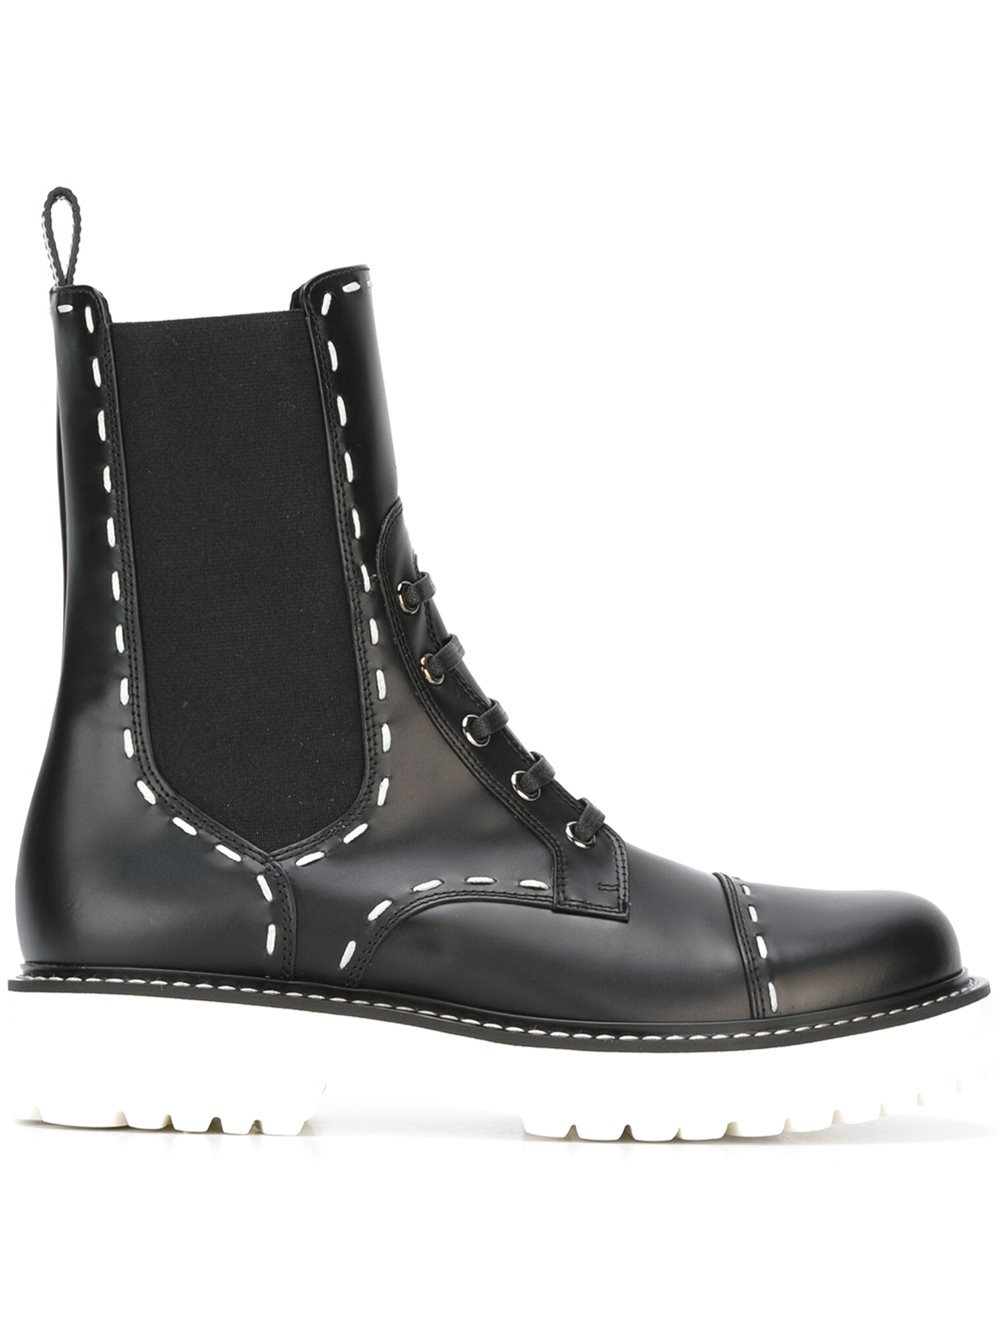 dolce gabbana utility boots in black lyst